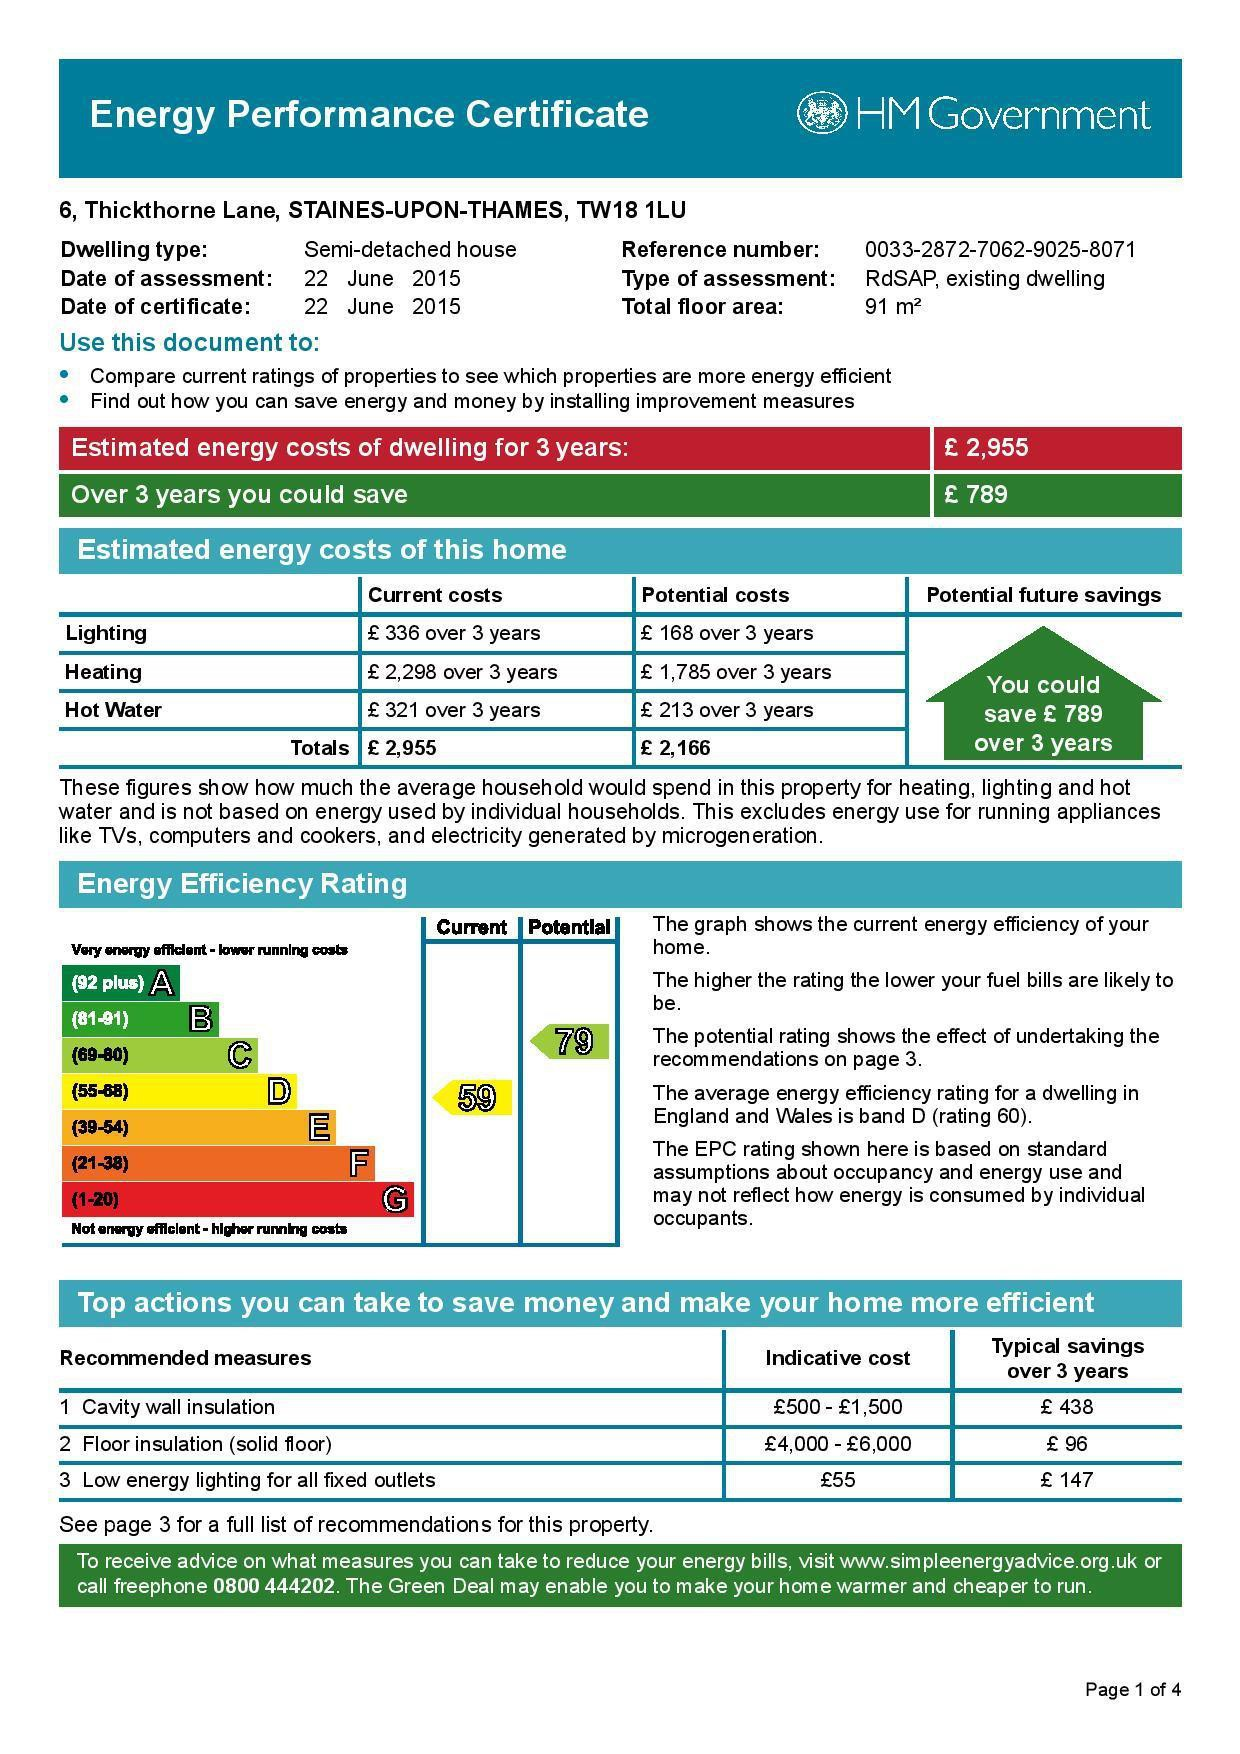 EPC Graph for 6 Thickthorne Lane, Staines-Upon-Thames, Middlesex TW18 1LU